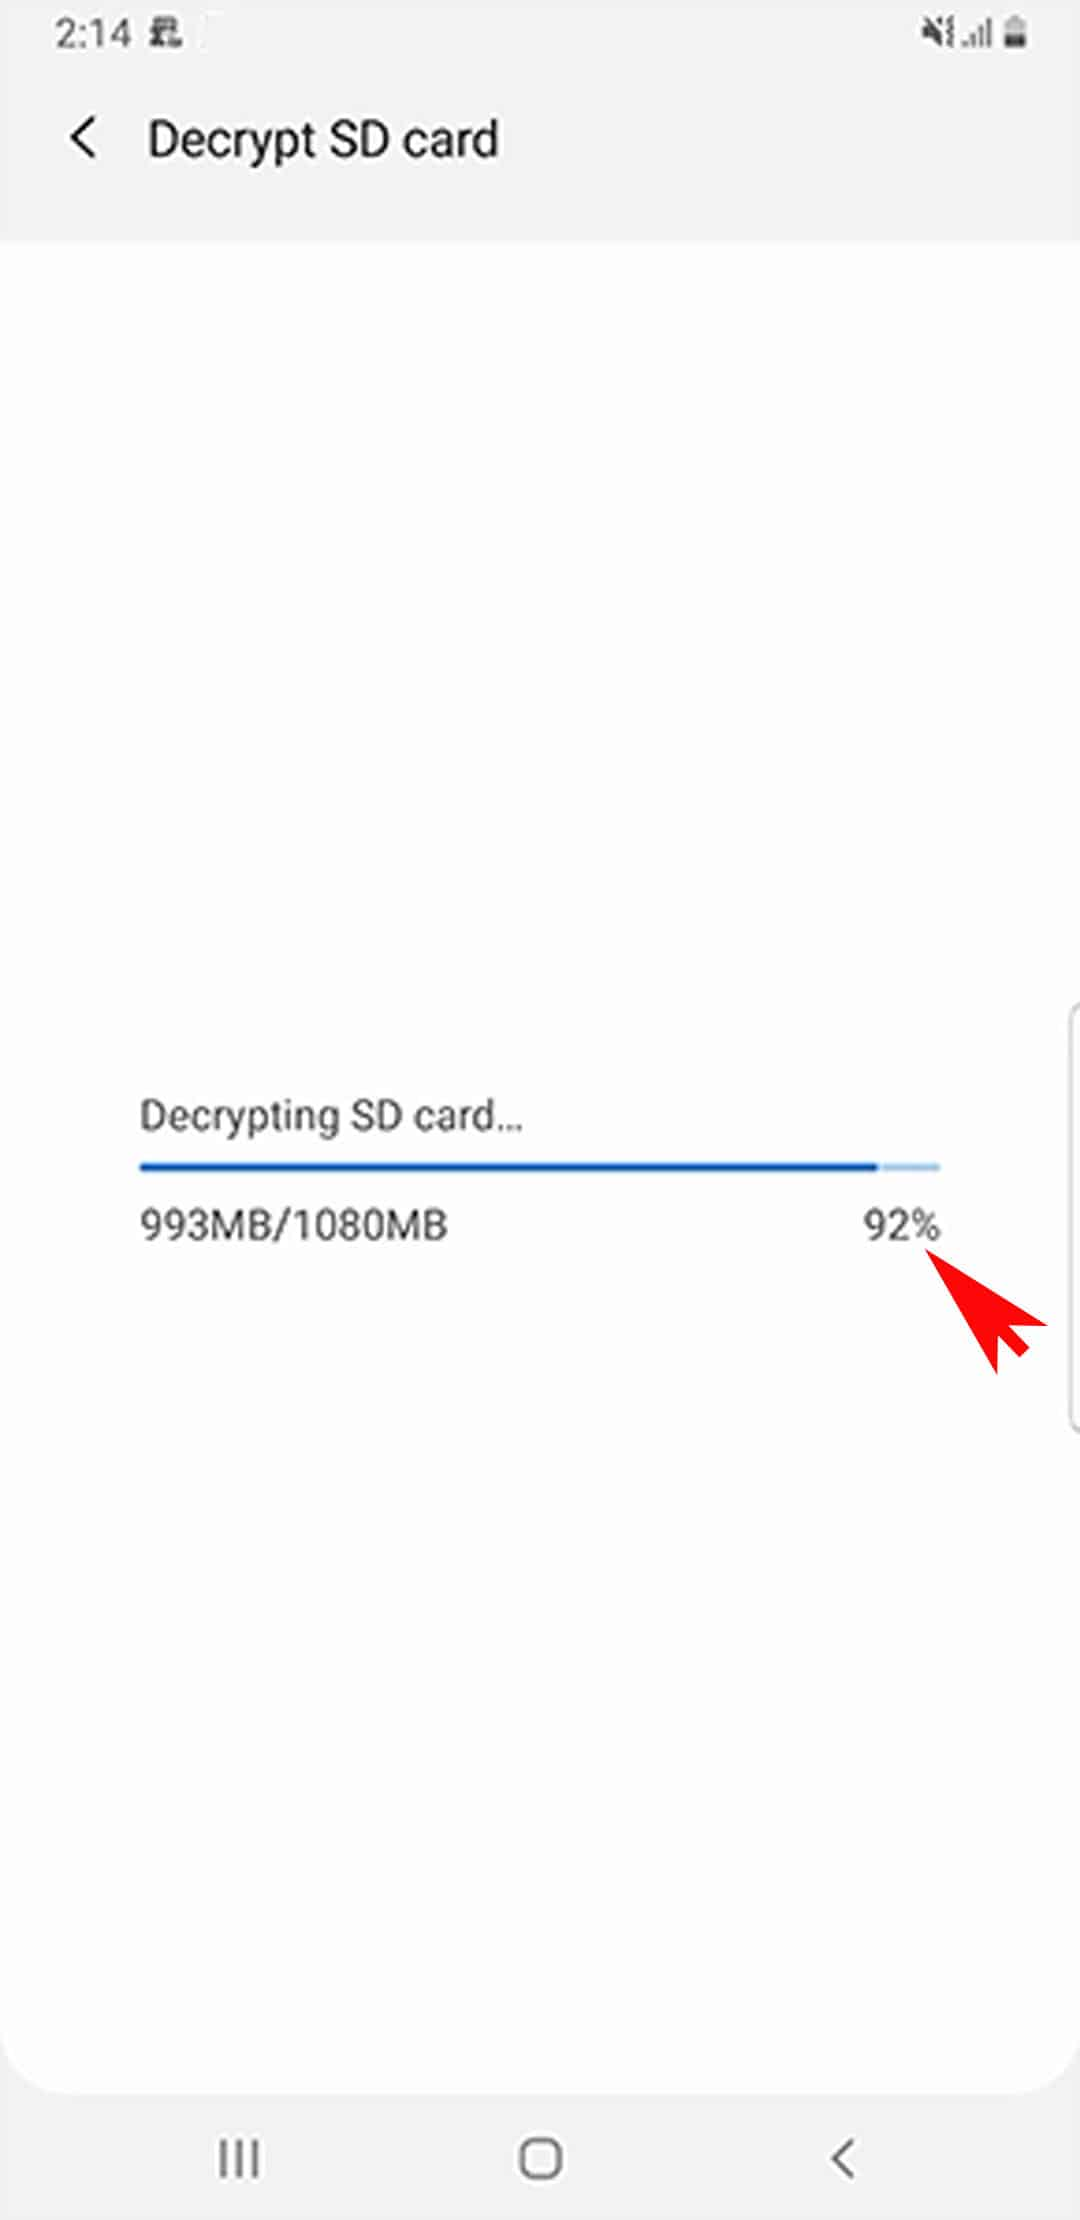 encrypt decrypt sd card galaxy s20 - decrypt sd card progress bar